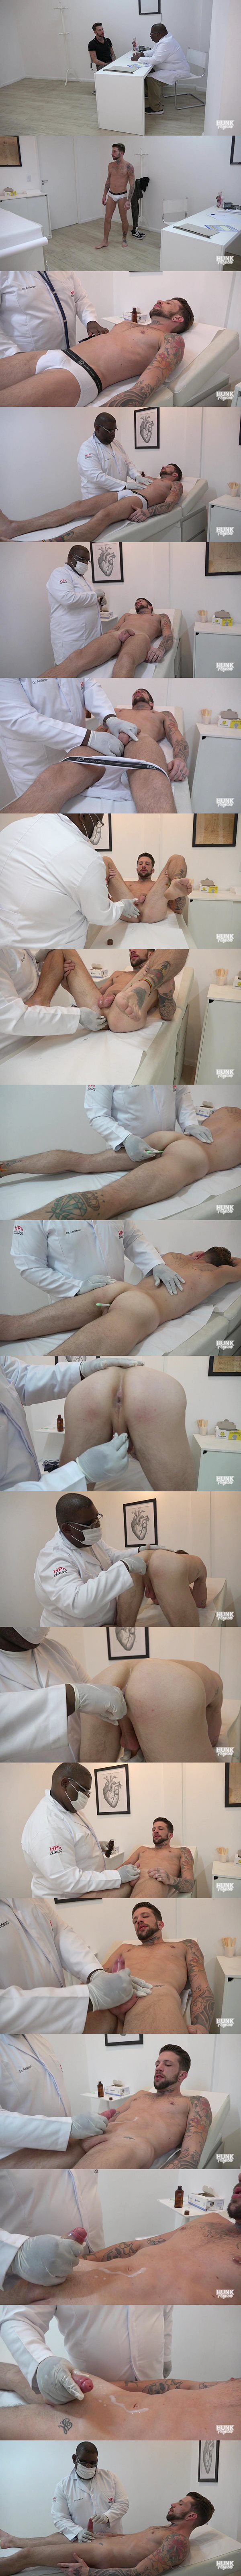 A macho amateur inked straight latino get his naked body examined and tight virgin ass fingered before he gets jerked off in 382 at Hunkphysical